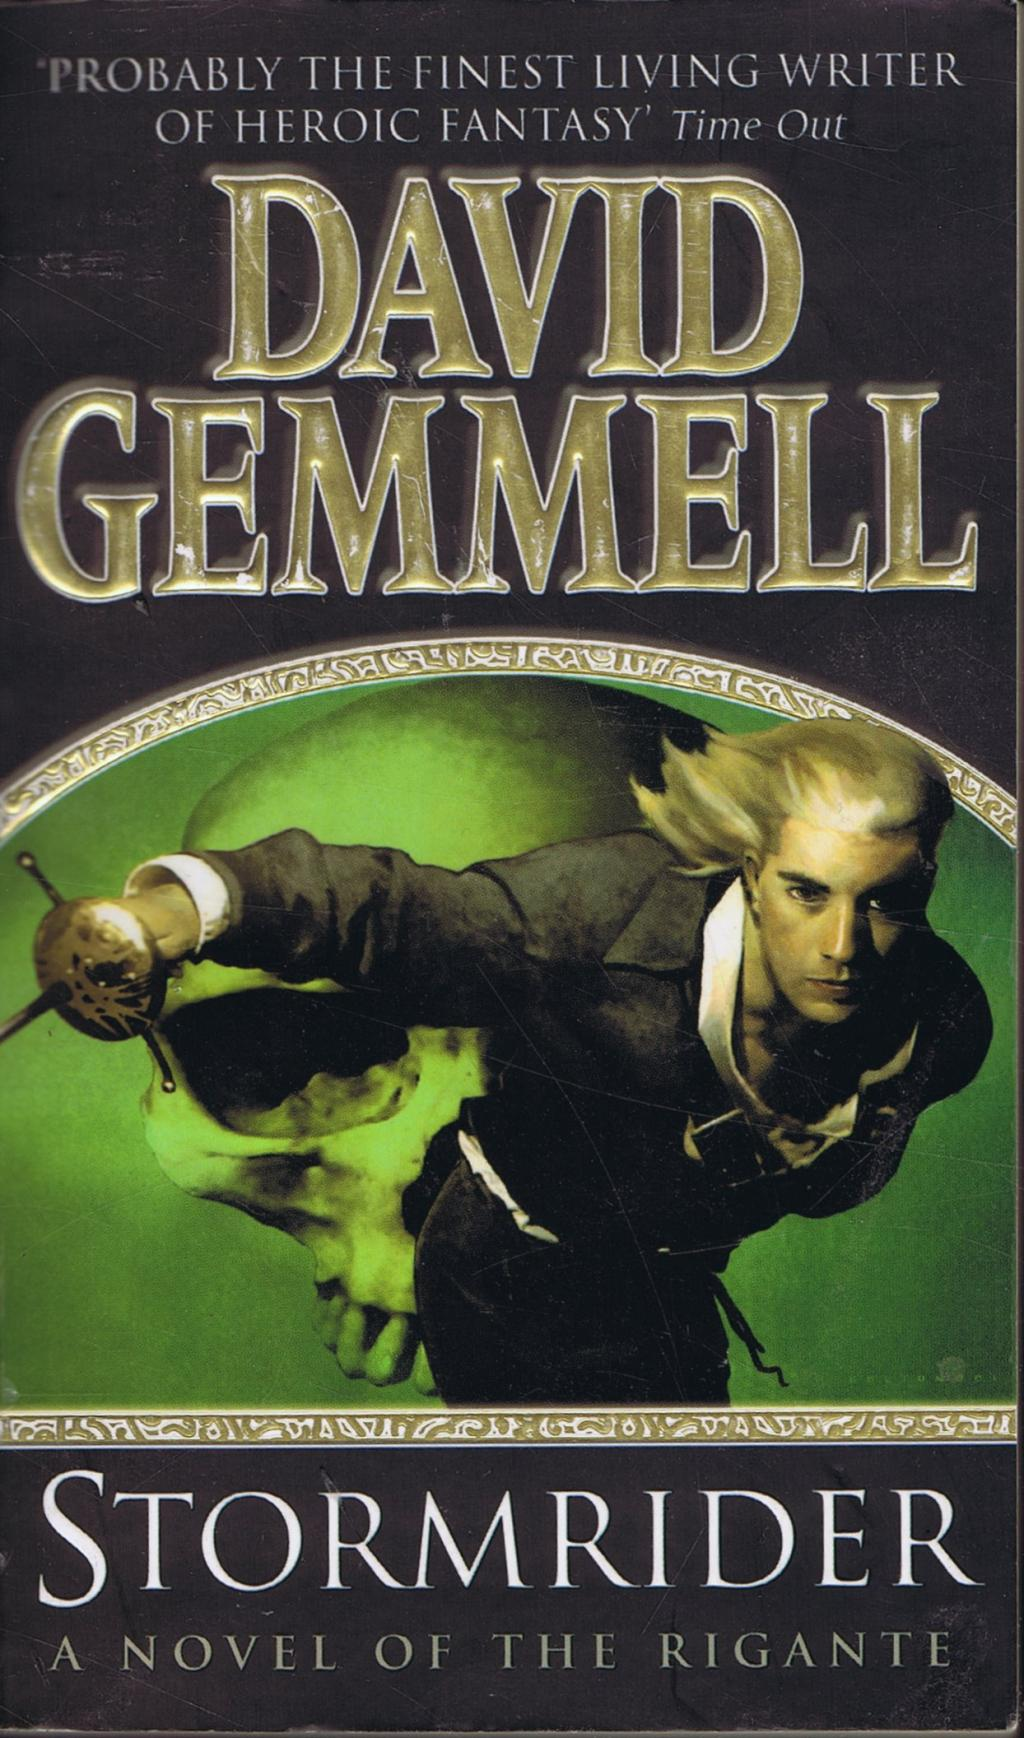 stormrider av david gemmell  pocket